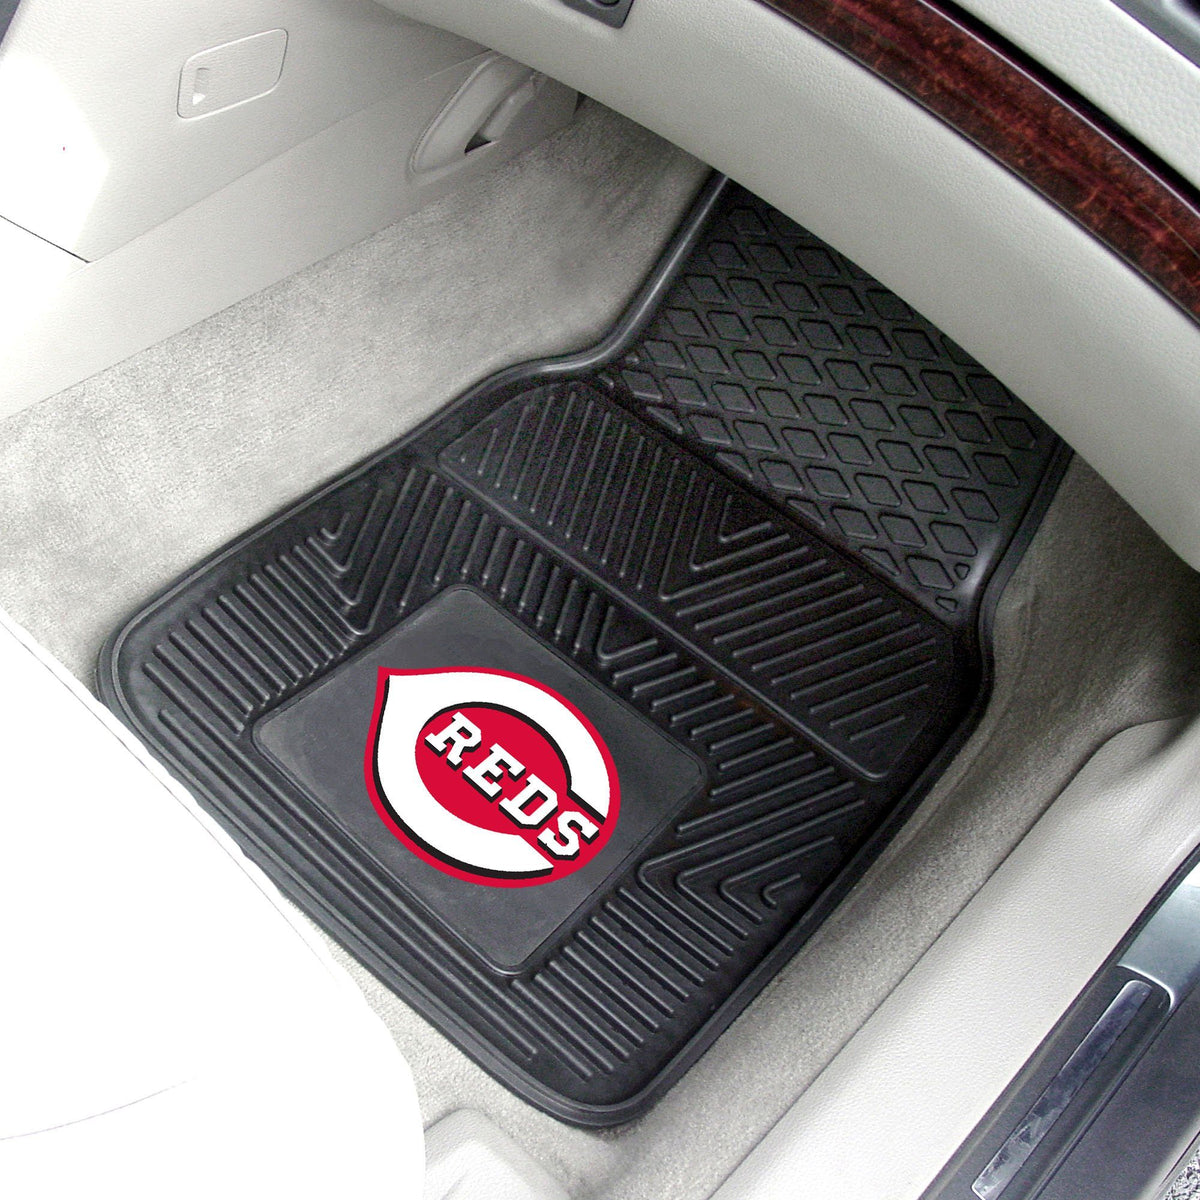 MLB - Vinyl Car Mat, 2-Piece Set MLB Mats, Front Car Mats, 2-pc Vinyl Car Mat Set, MLB, Auto Fan Mats Cincinnati Reds